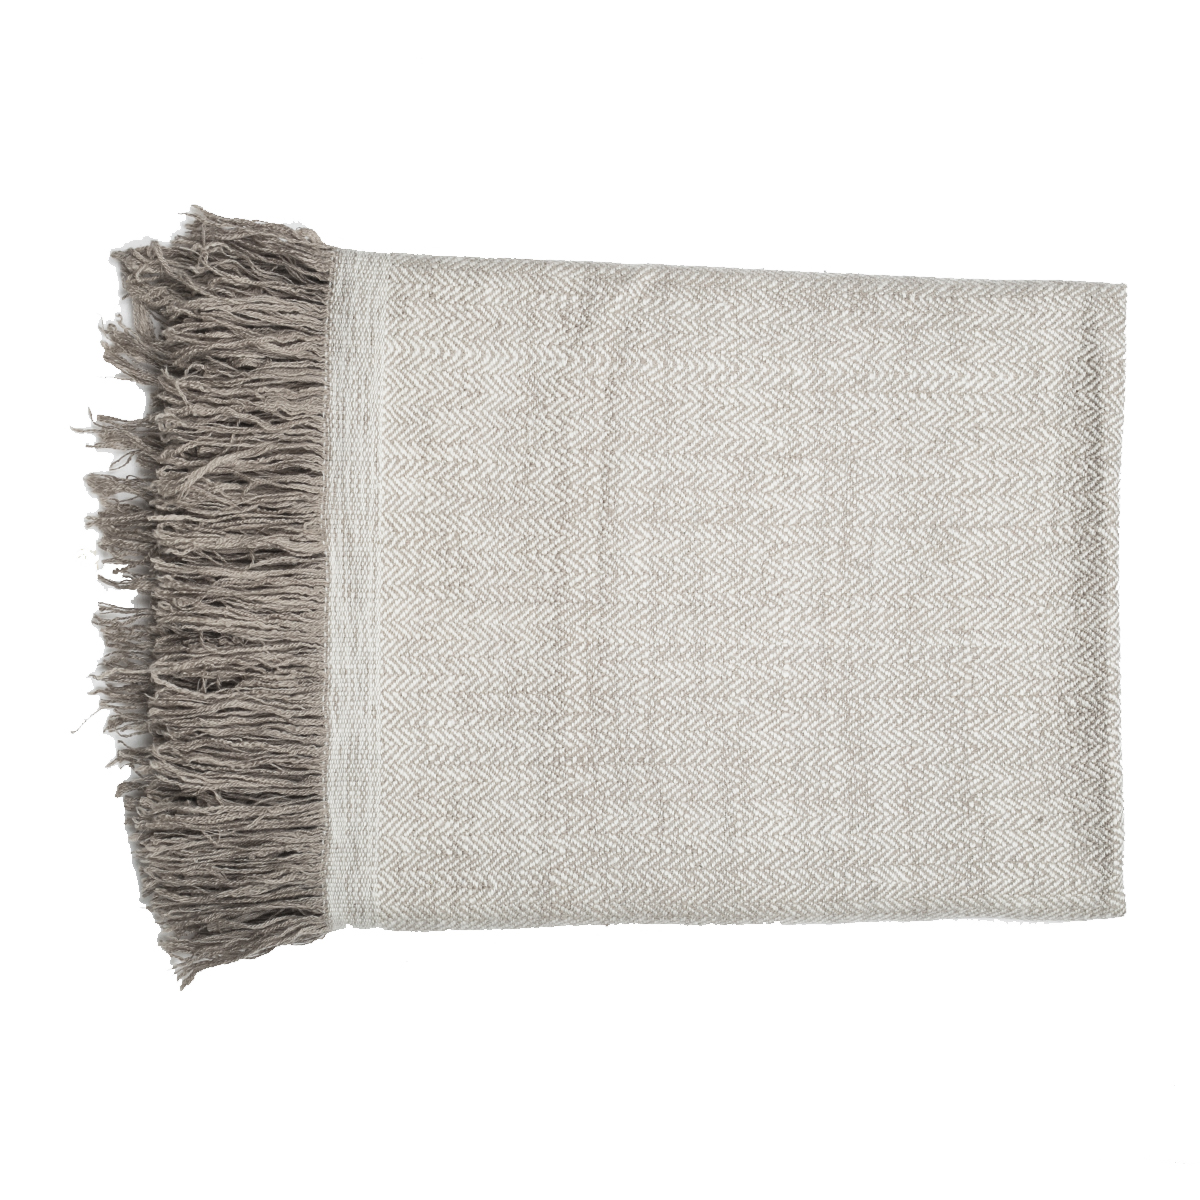 Cashmere Throw in Herringbone Weave - Beige (Made to Order)